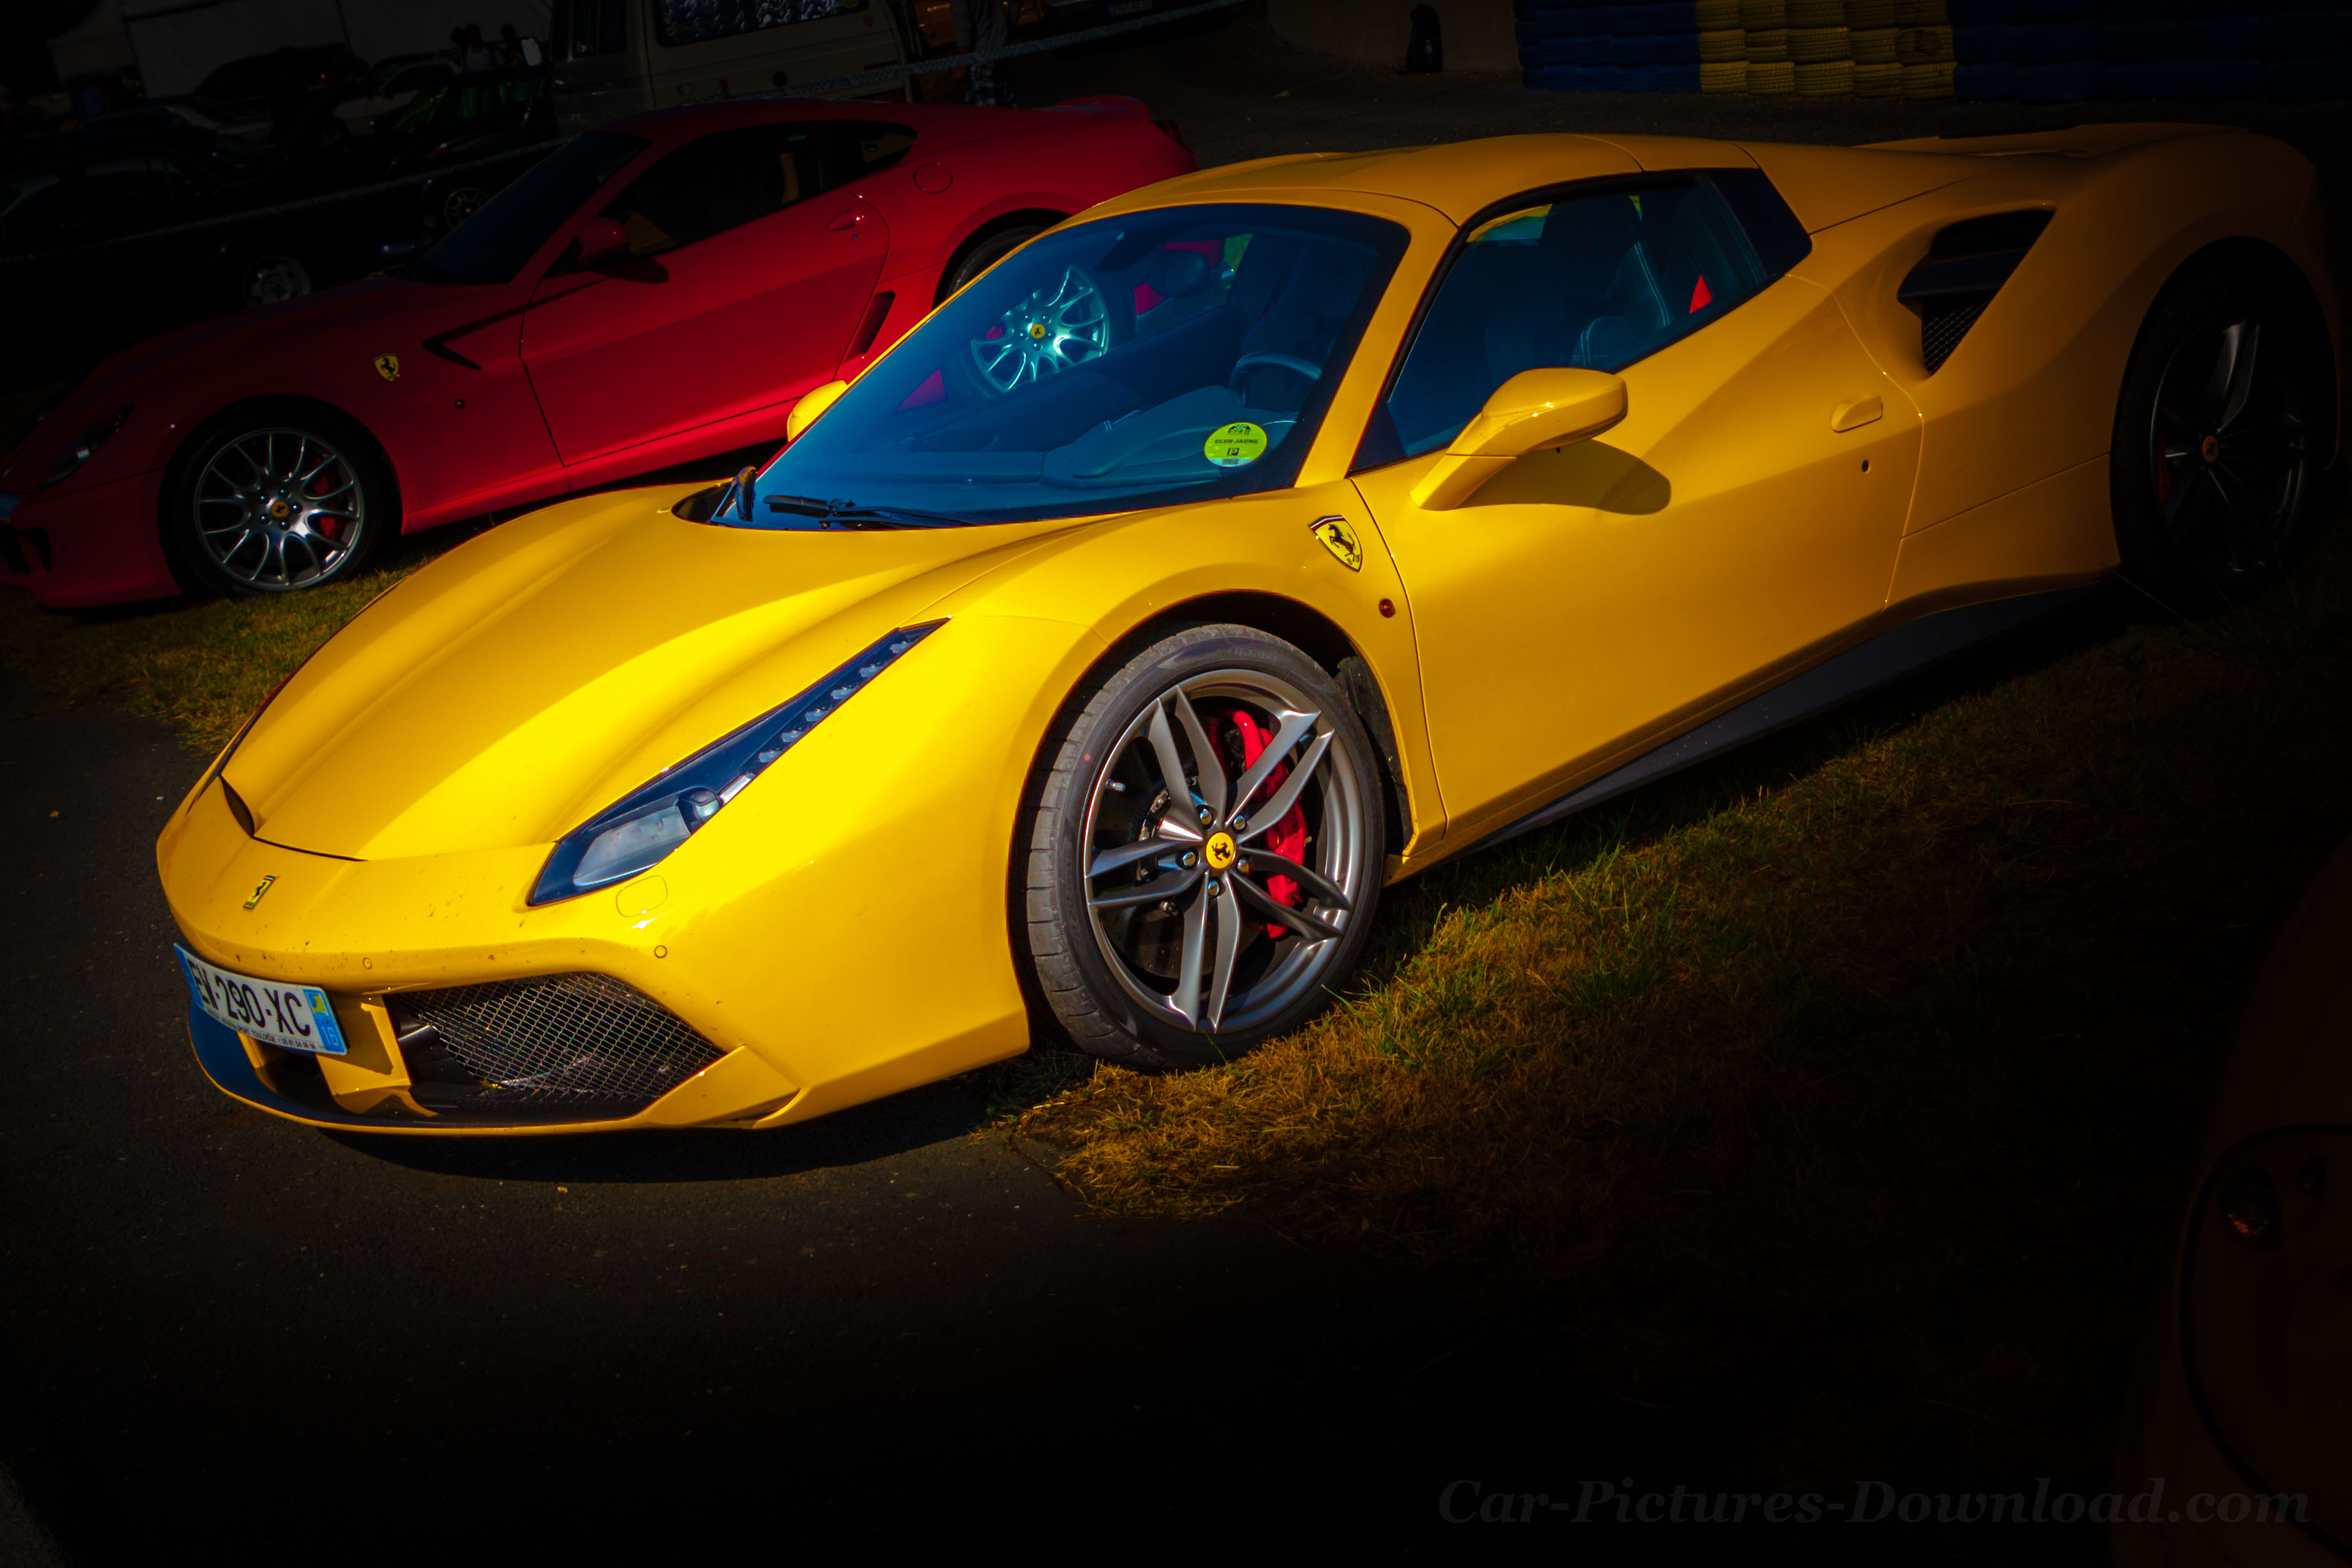 Cool Car Wallpapers HD Download   Sports Muscle And Race Cars 3688x2459